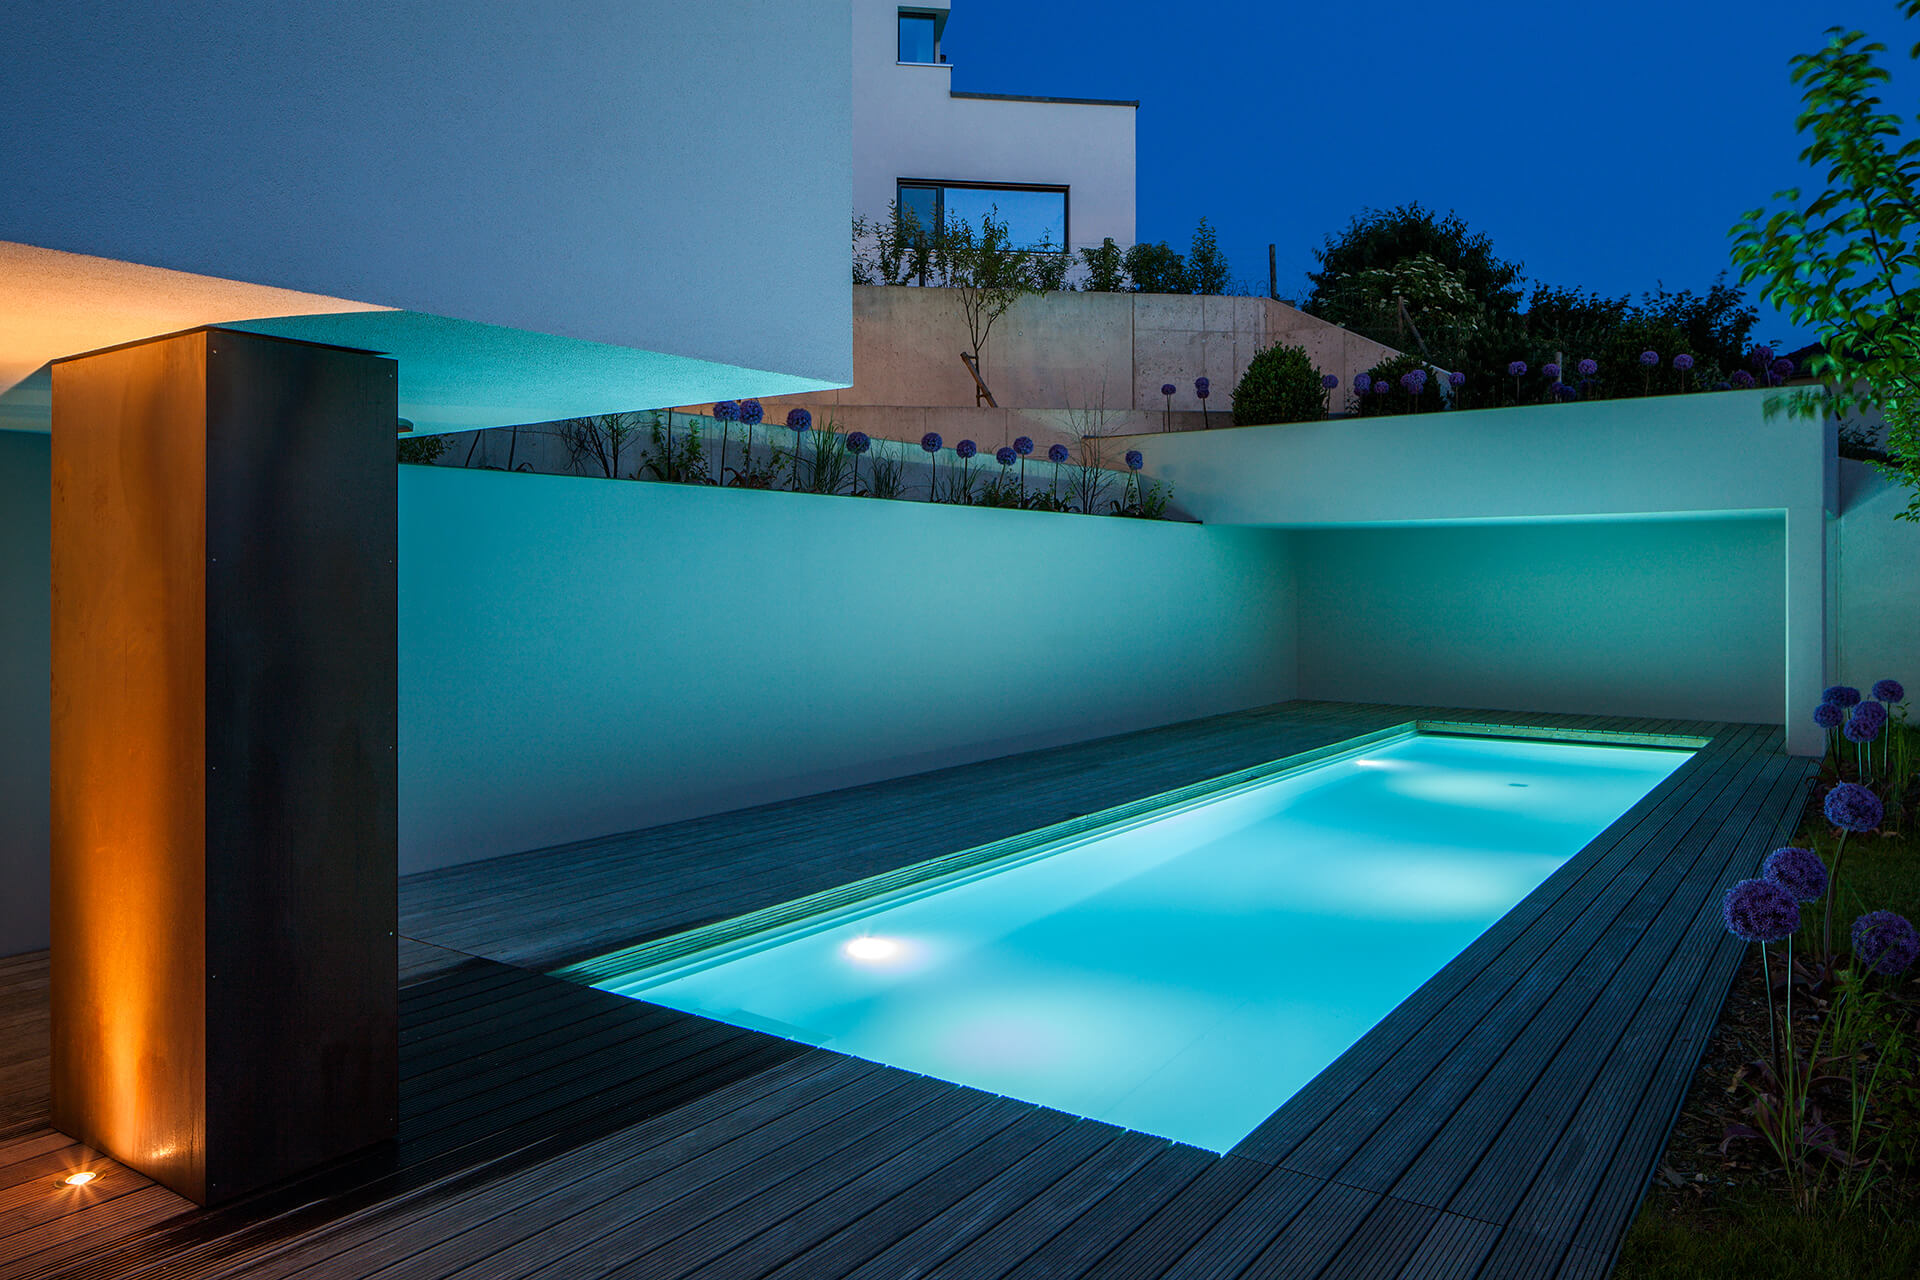 beleuchteter Outdoor-Pool am Abend